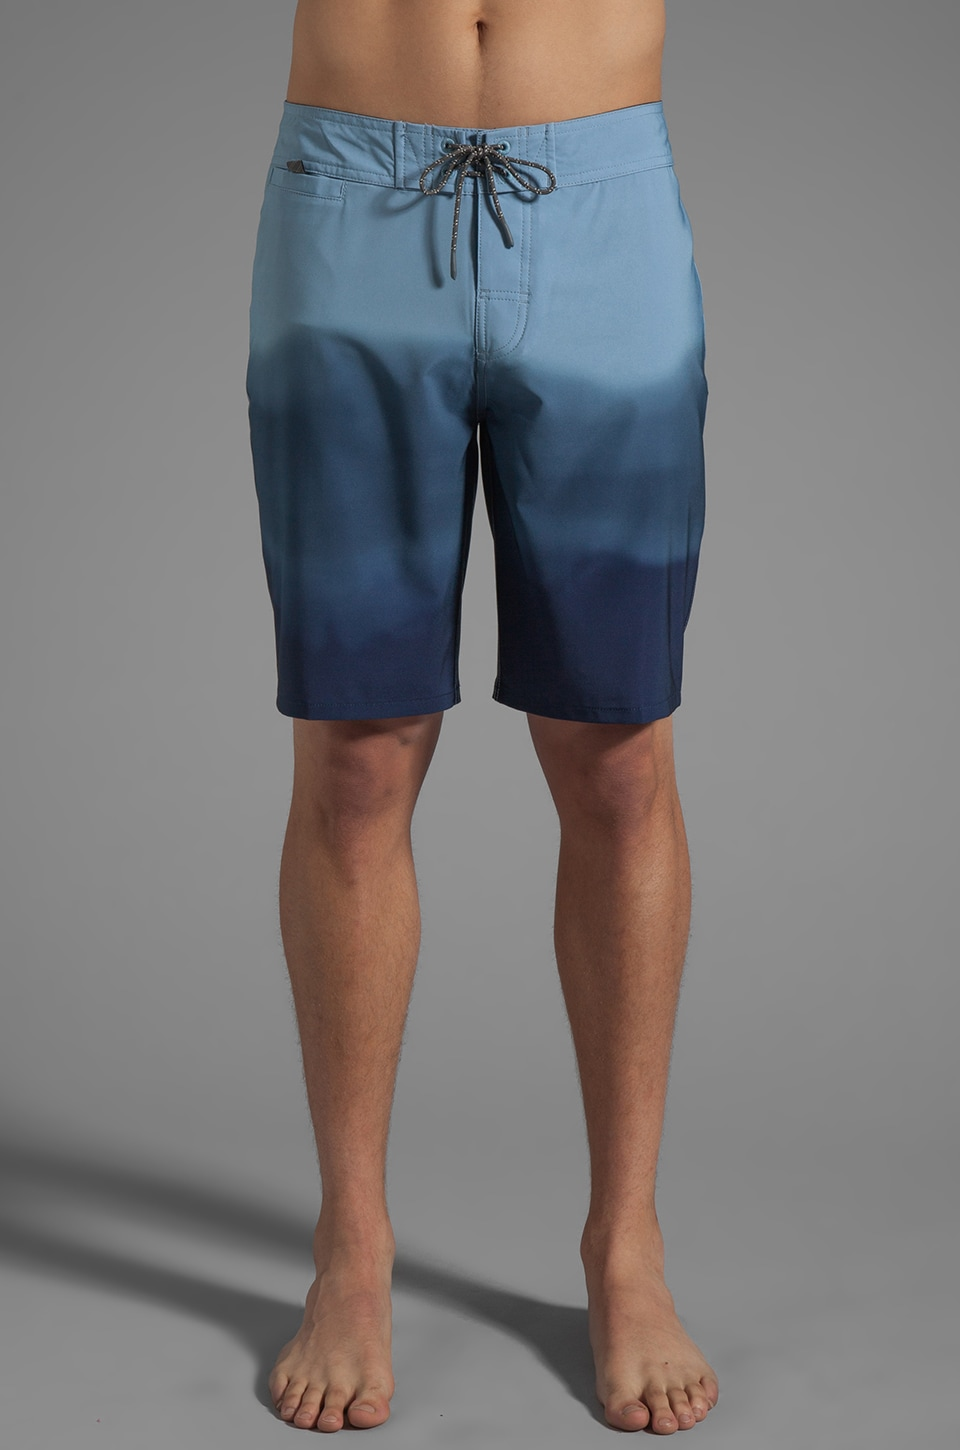 V.S.T.R Faded Boardshort in Ensign Blue